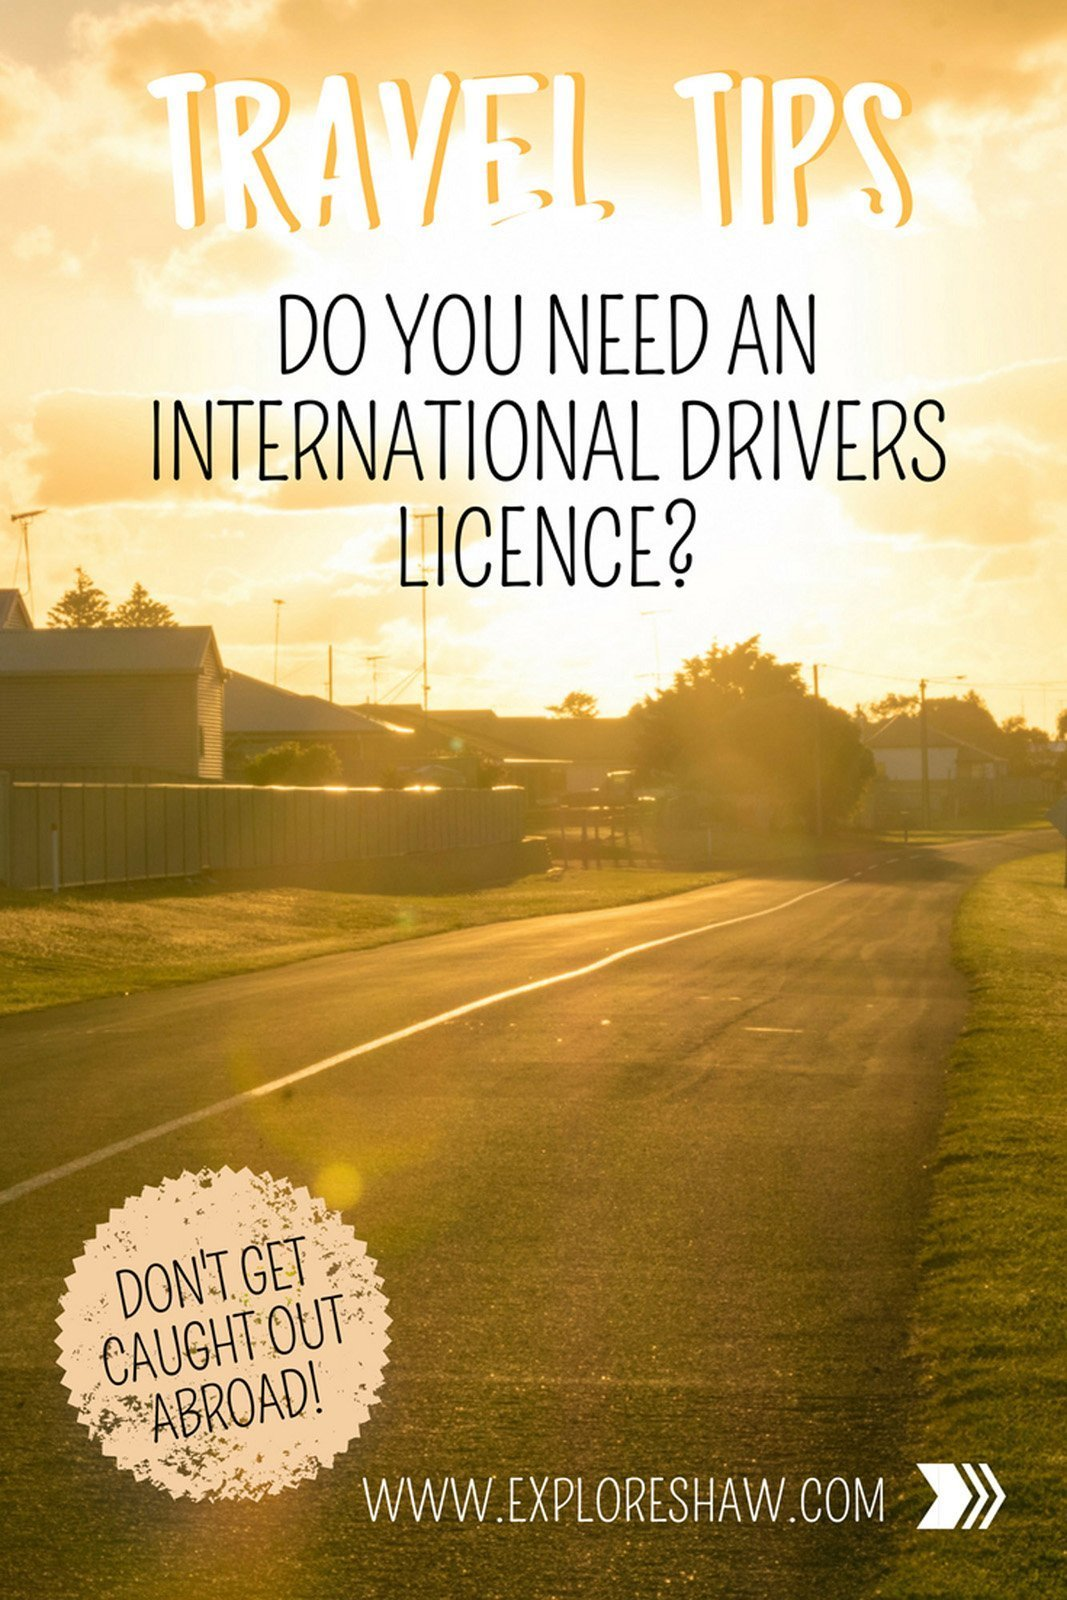 DO YOU NEED AN INTERNATIONAL DRIVERS LICENCE